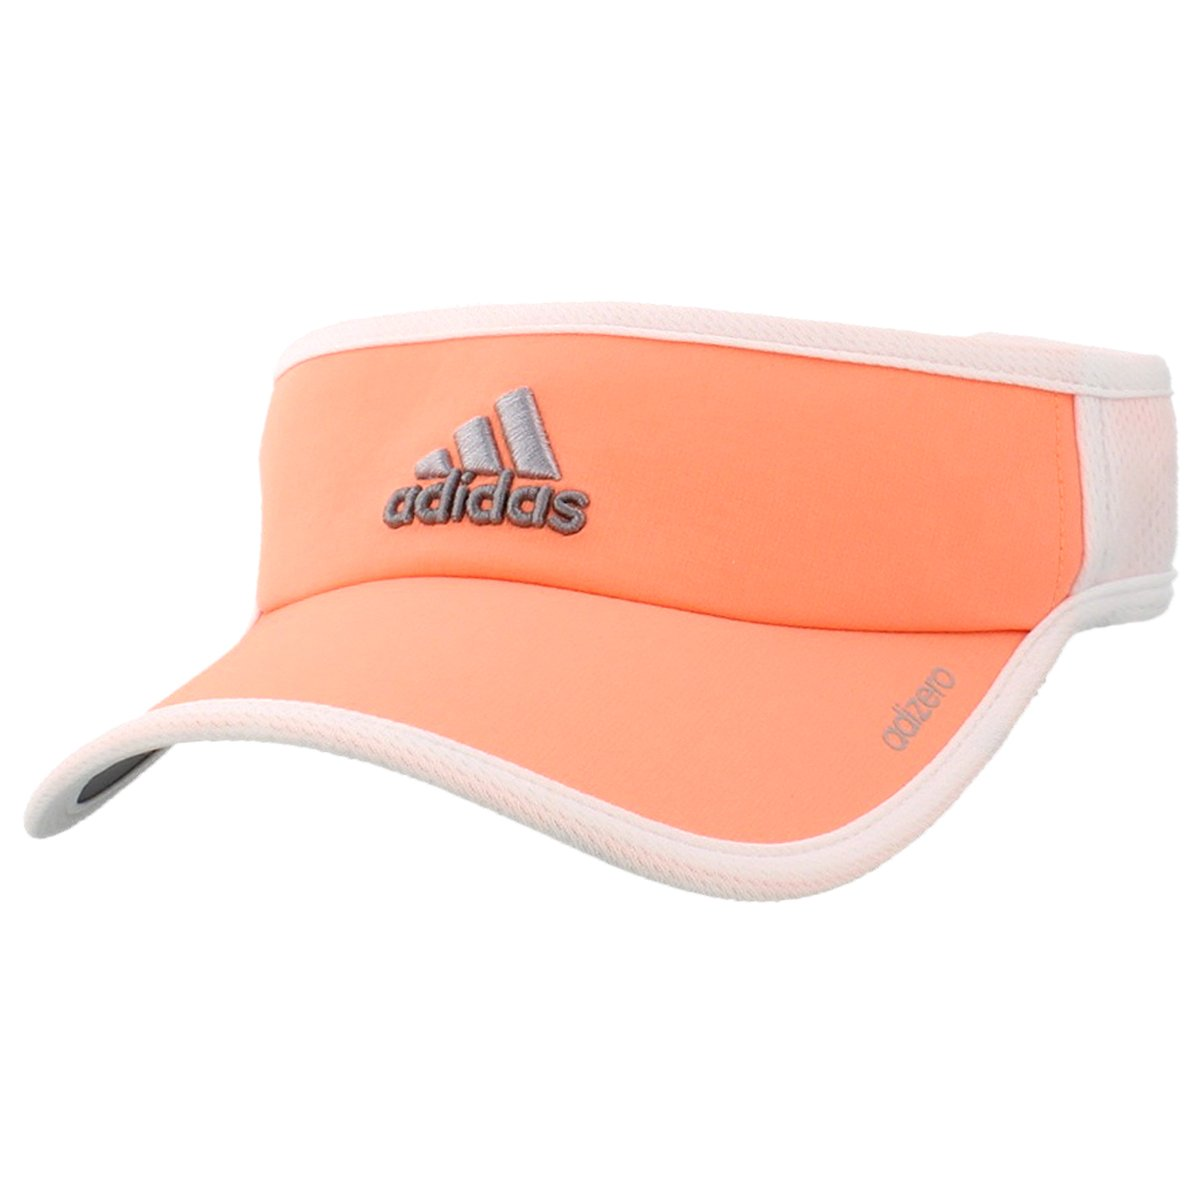 adidas Women's adiZero II Visor Black/White/Blaze Pink One Size Fits All Agron Hats & Accessories 5127587-White-1